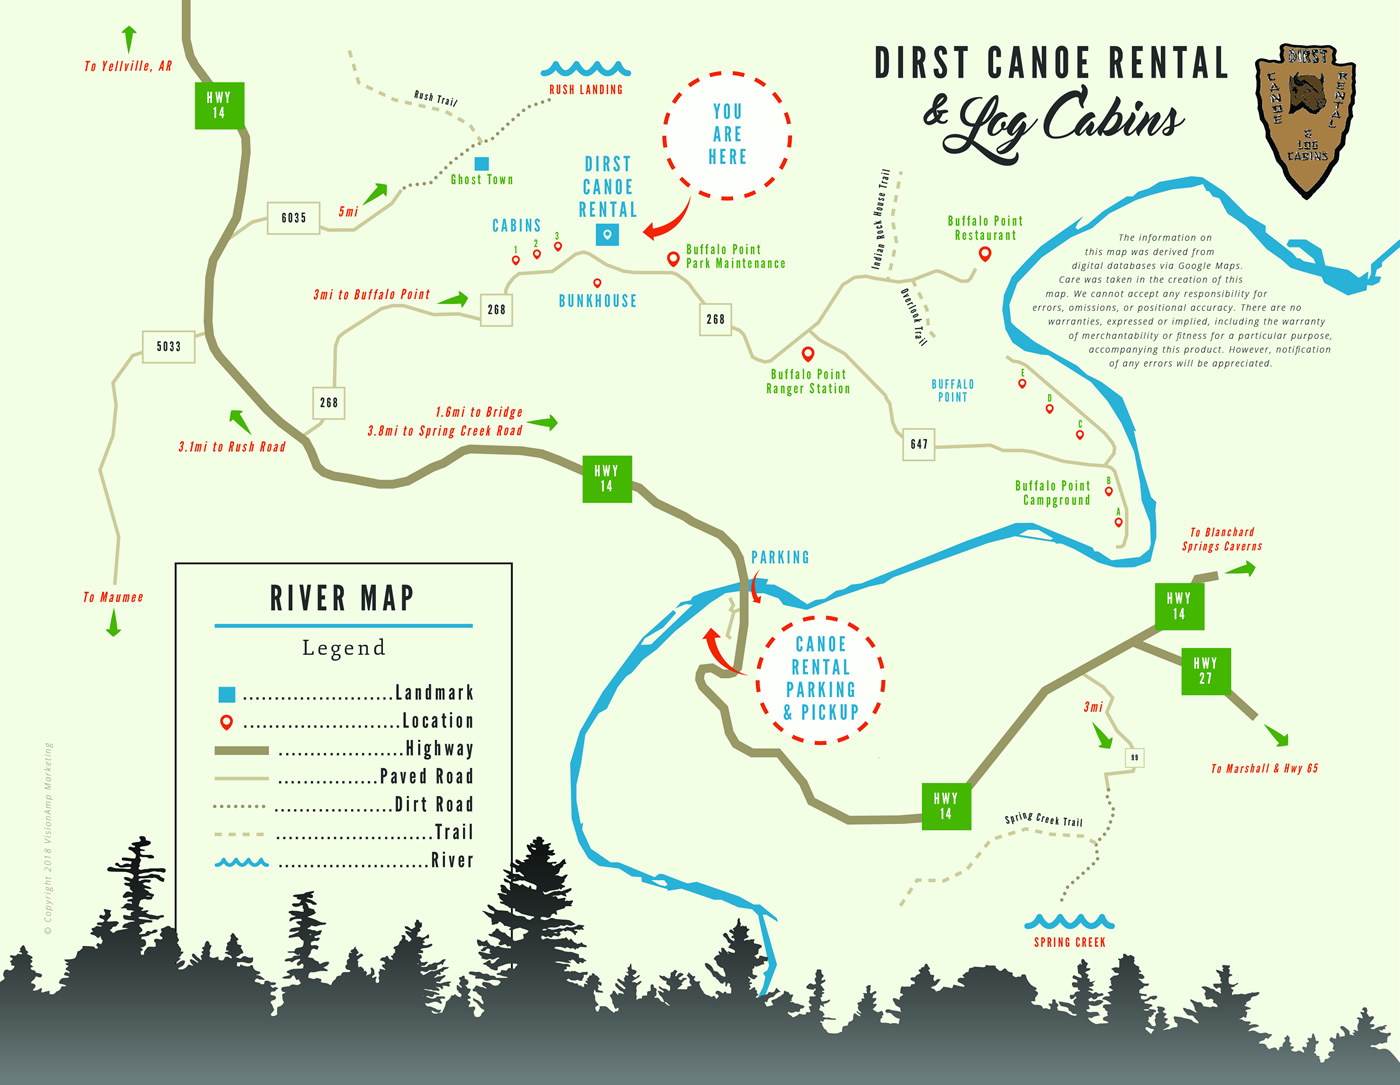 River Map Dirst Canoe Rental Log Cabins Buffalo National River